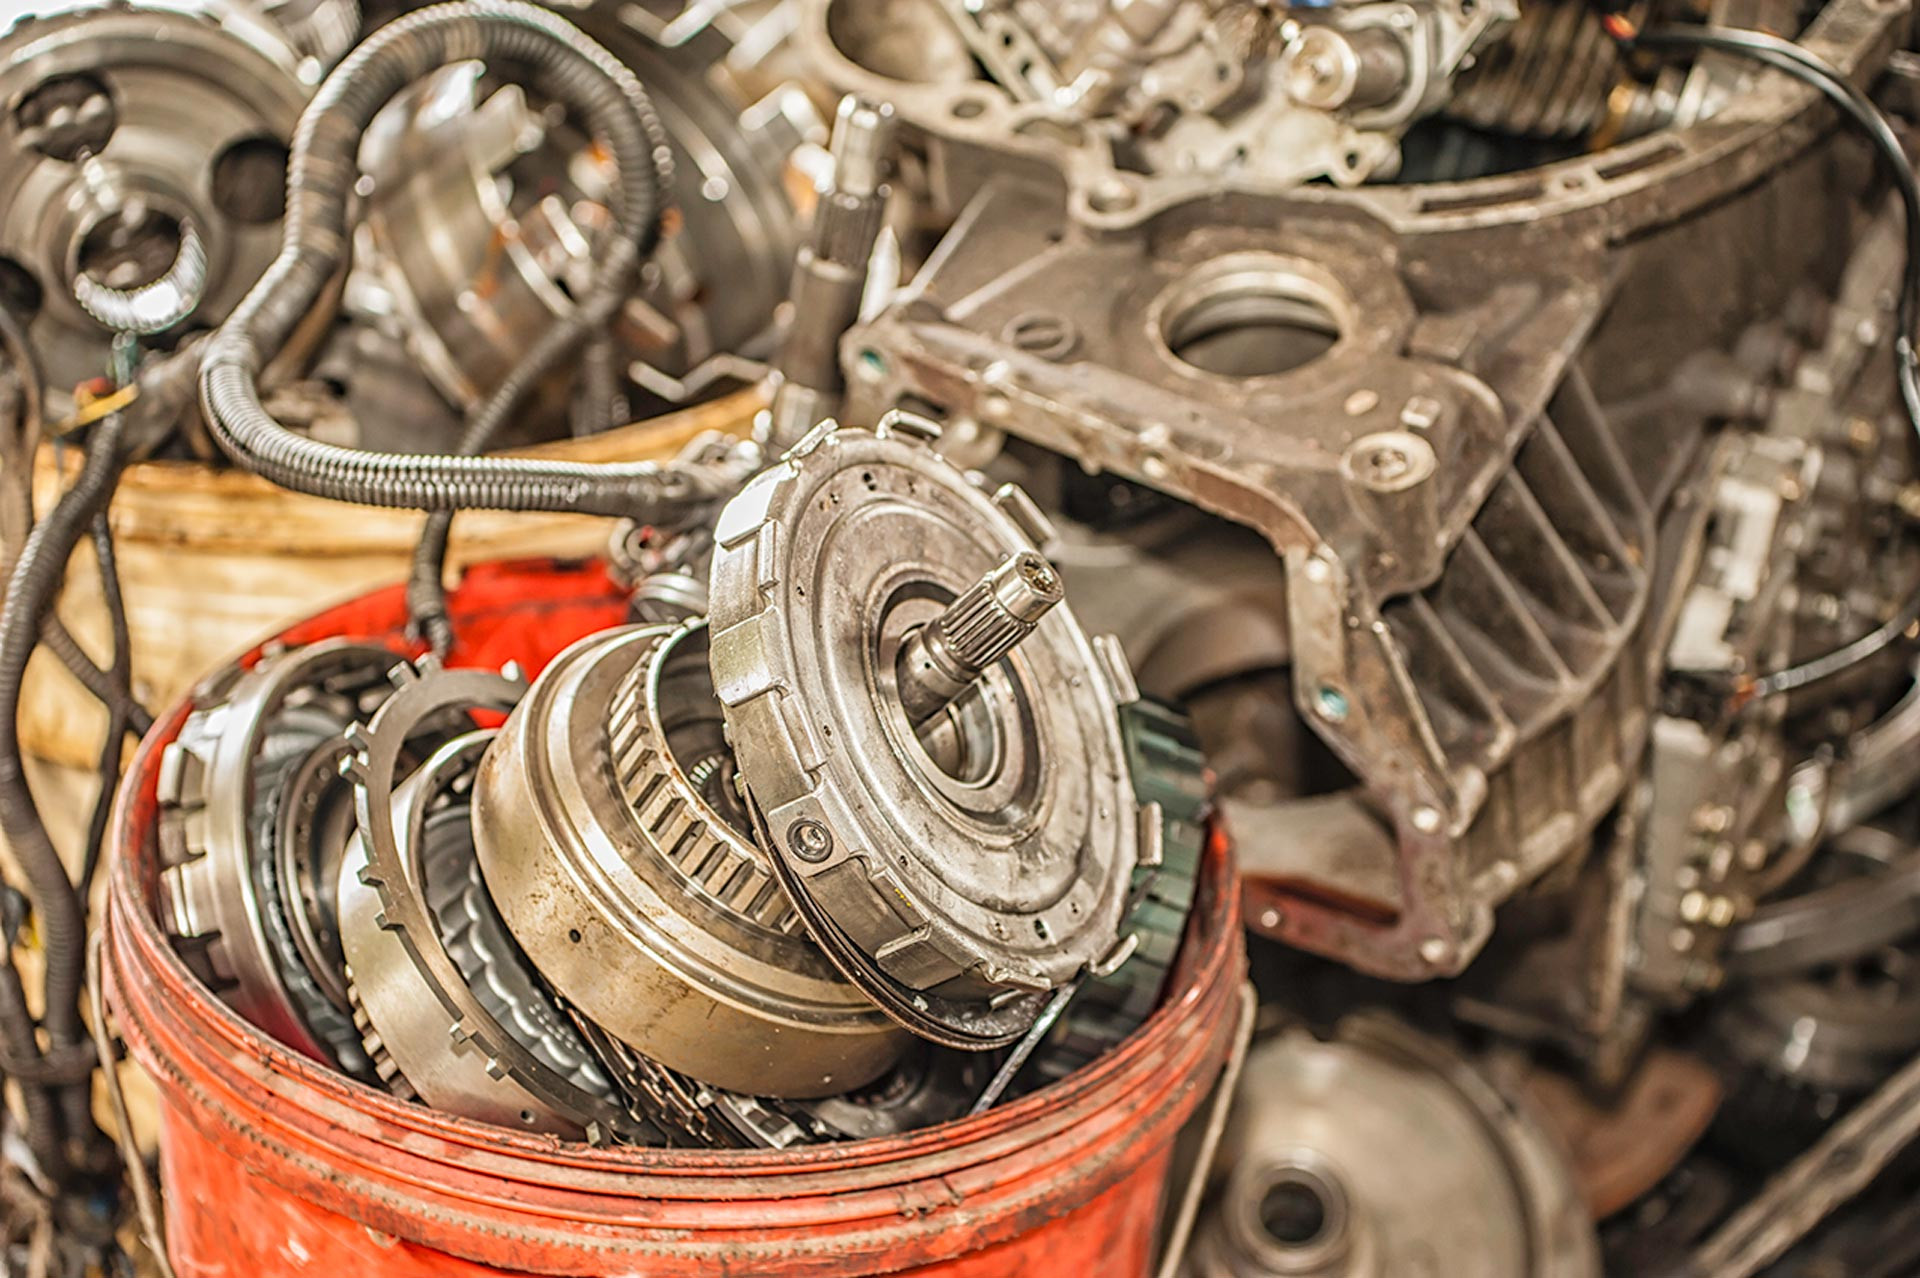 Used truck parts available to purchase from our salvage yard